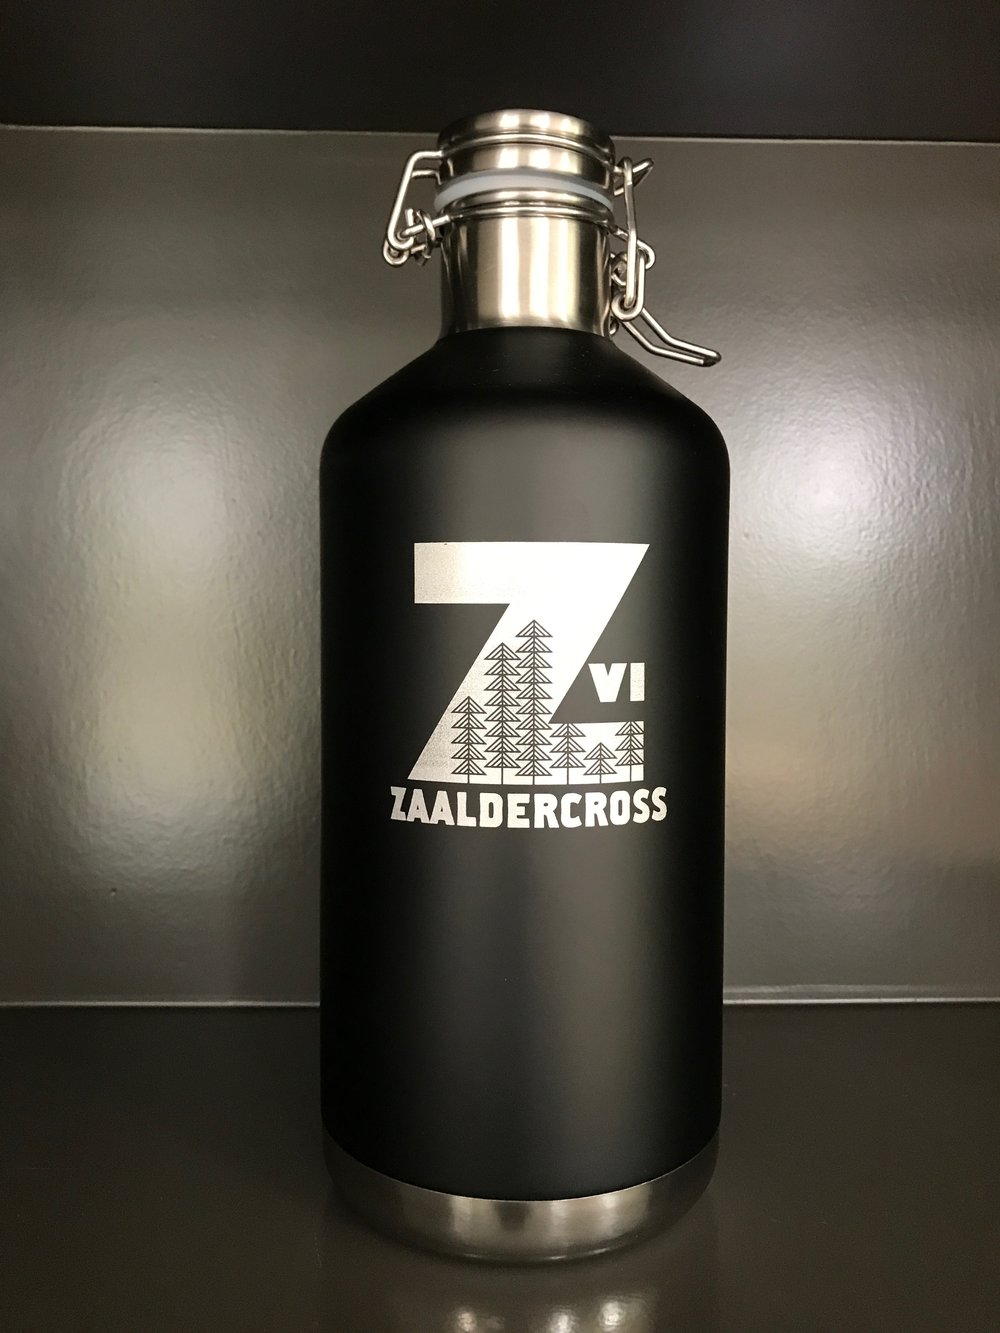 I love growlers, who doesn't? But what about a custom insulated Z6 growler from Klean Kanteen?  The only way to get one of these beauties is to win your race at Zaaldercross.  OR if you're not the fastest dude or dudette on the day, you still have a shot through the Zaalderaffle.  I want one.